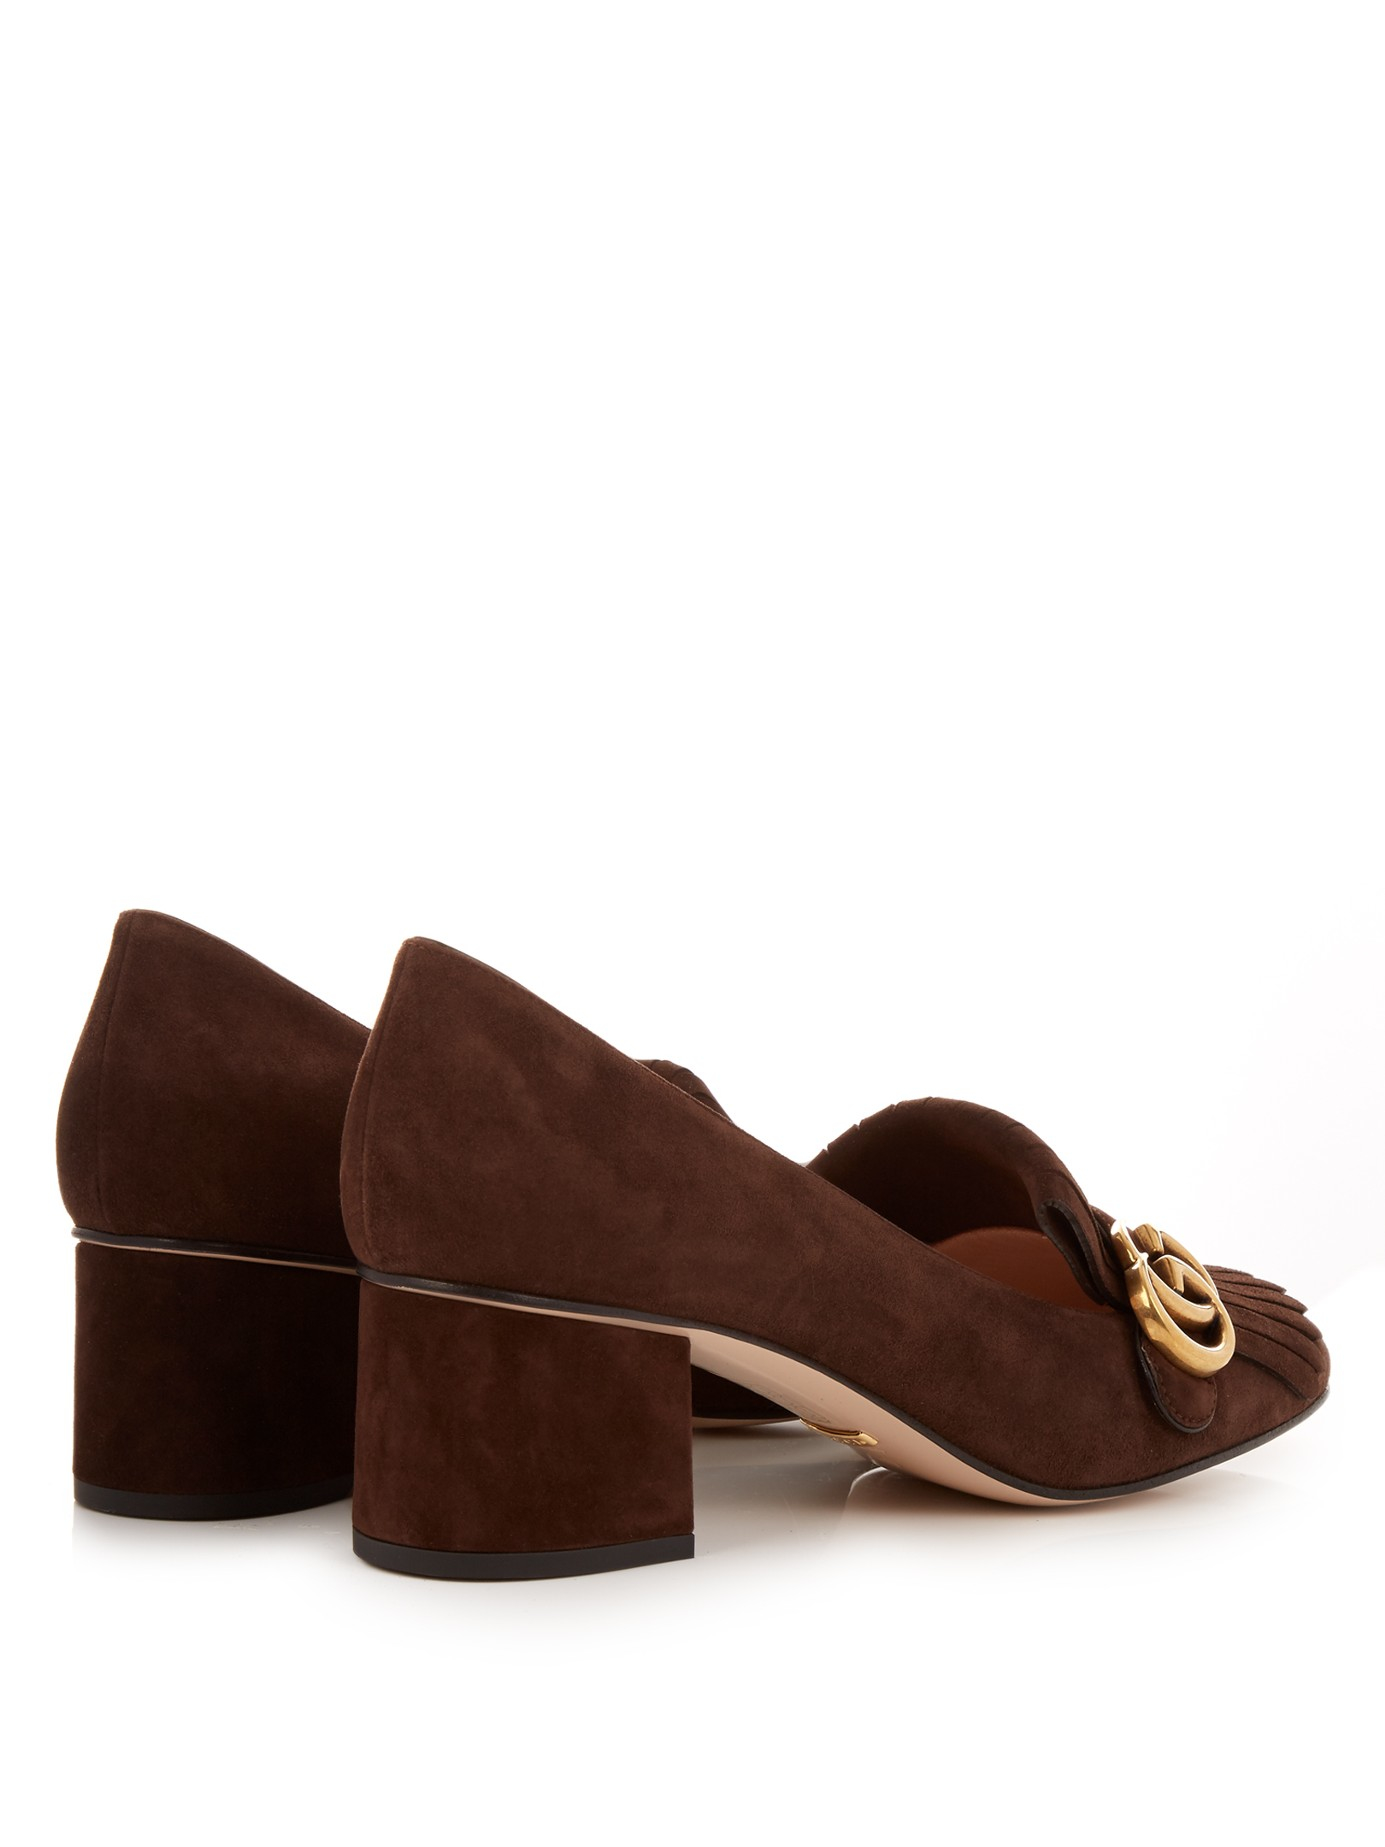 bd21e07b1 Gucci Marmont Fringed Suede Loafers in Brown - Lyst